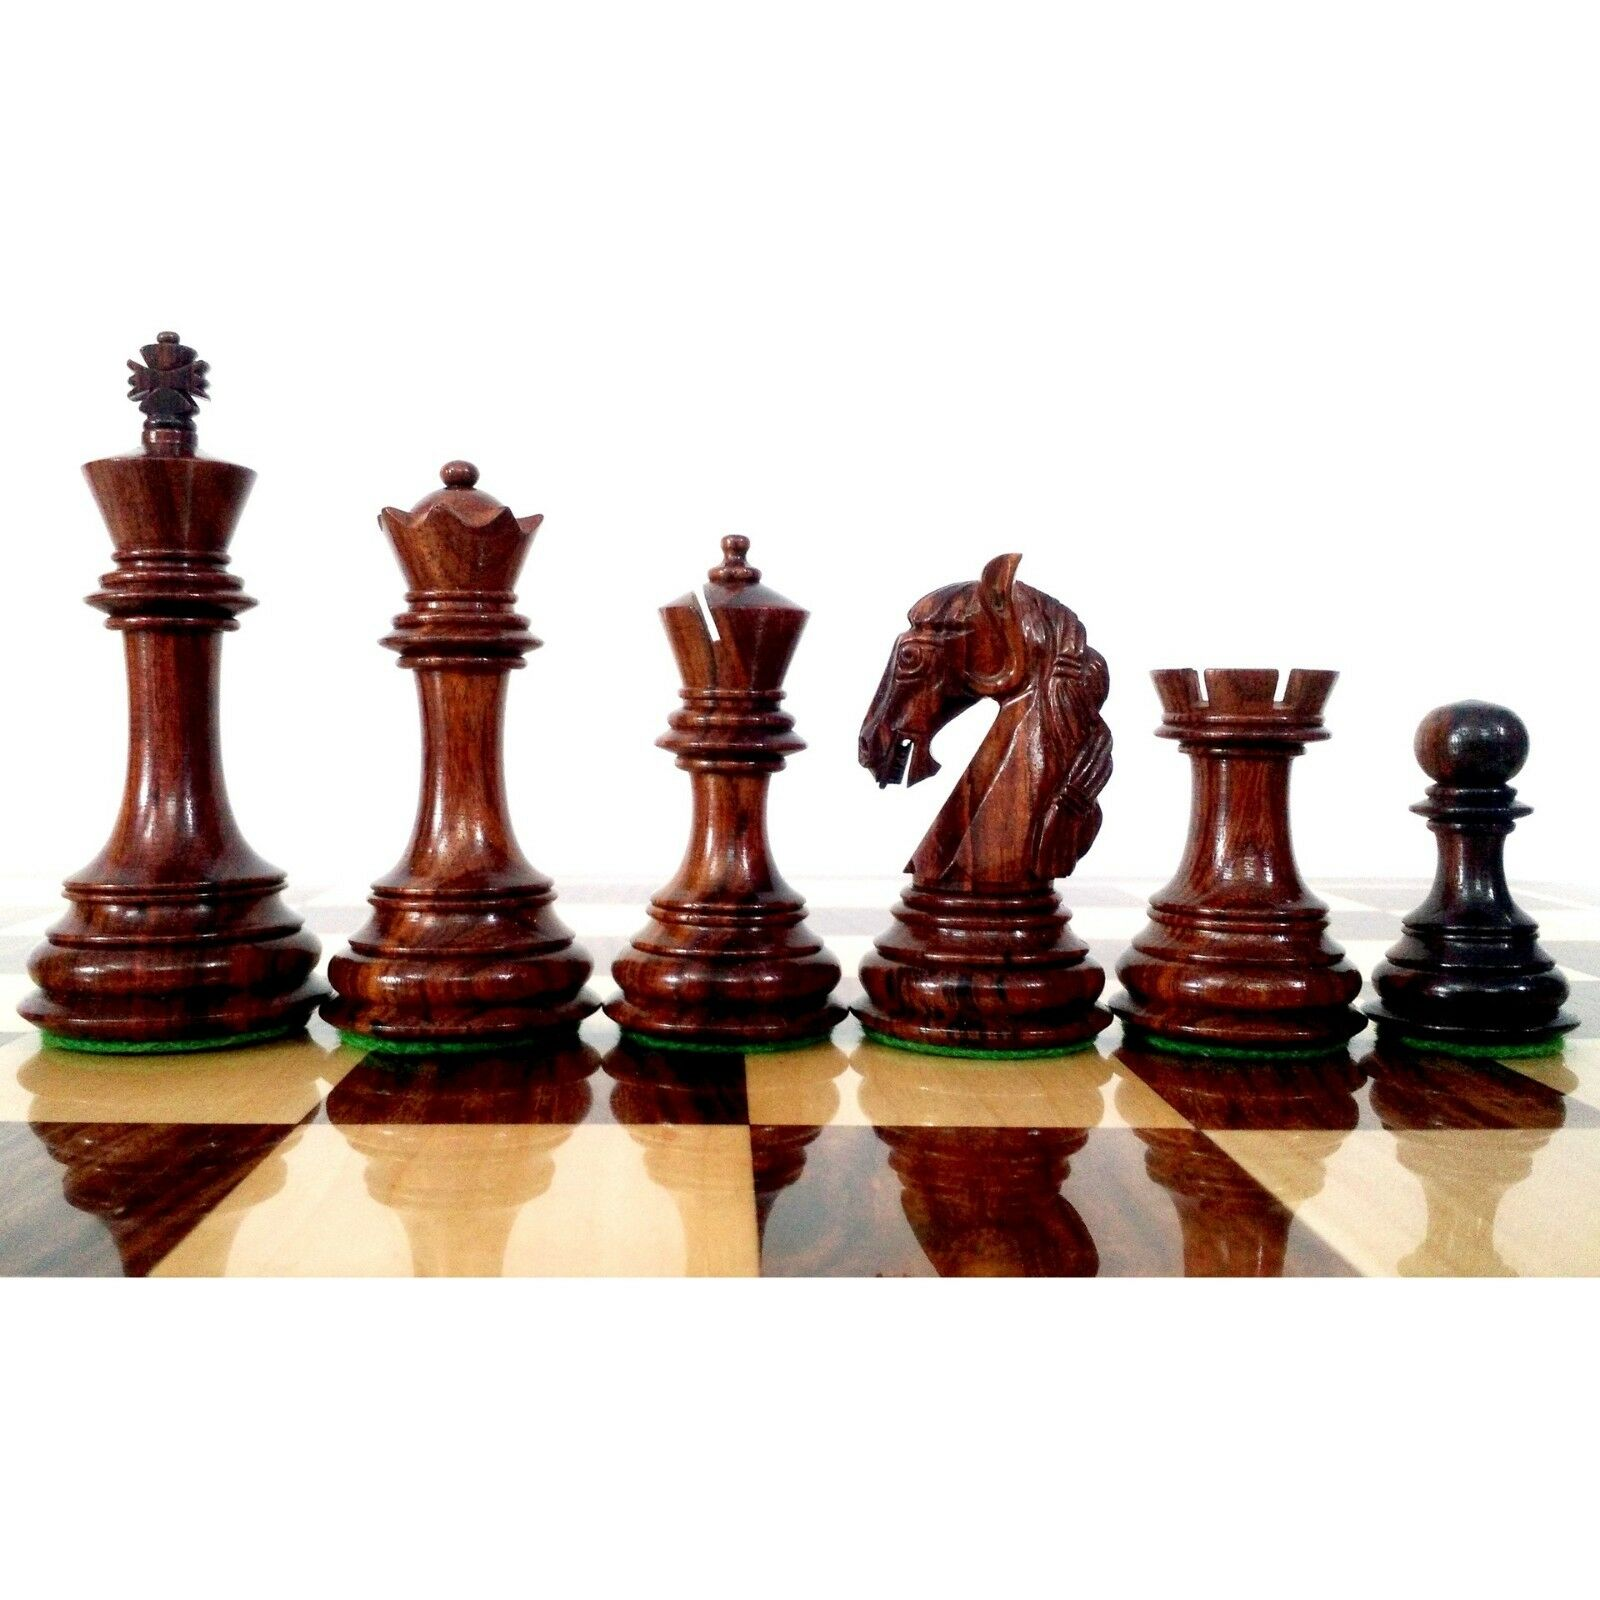 3.9  Unique Old Columbian Weighted Chess Pieces set - pink Wood- 4 Queens